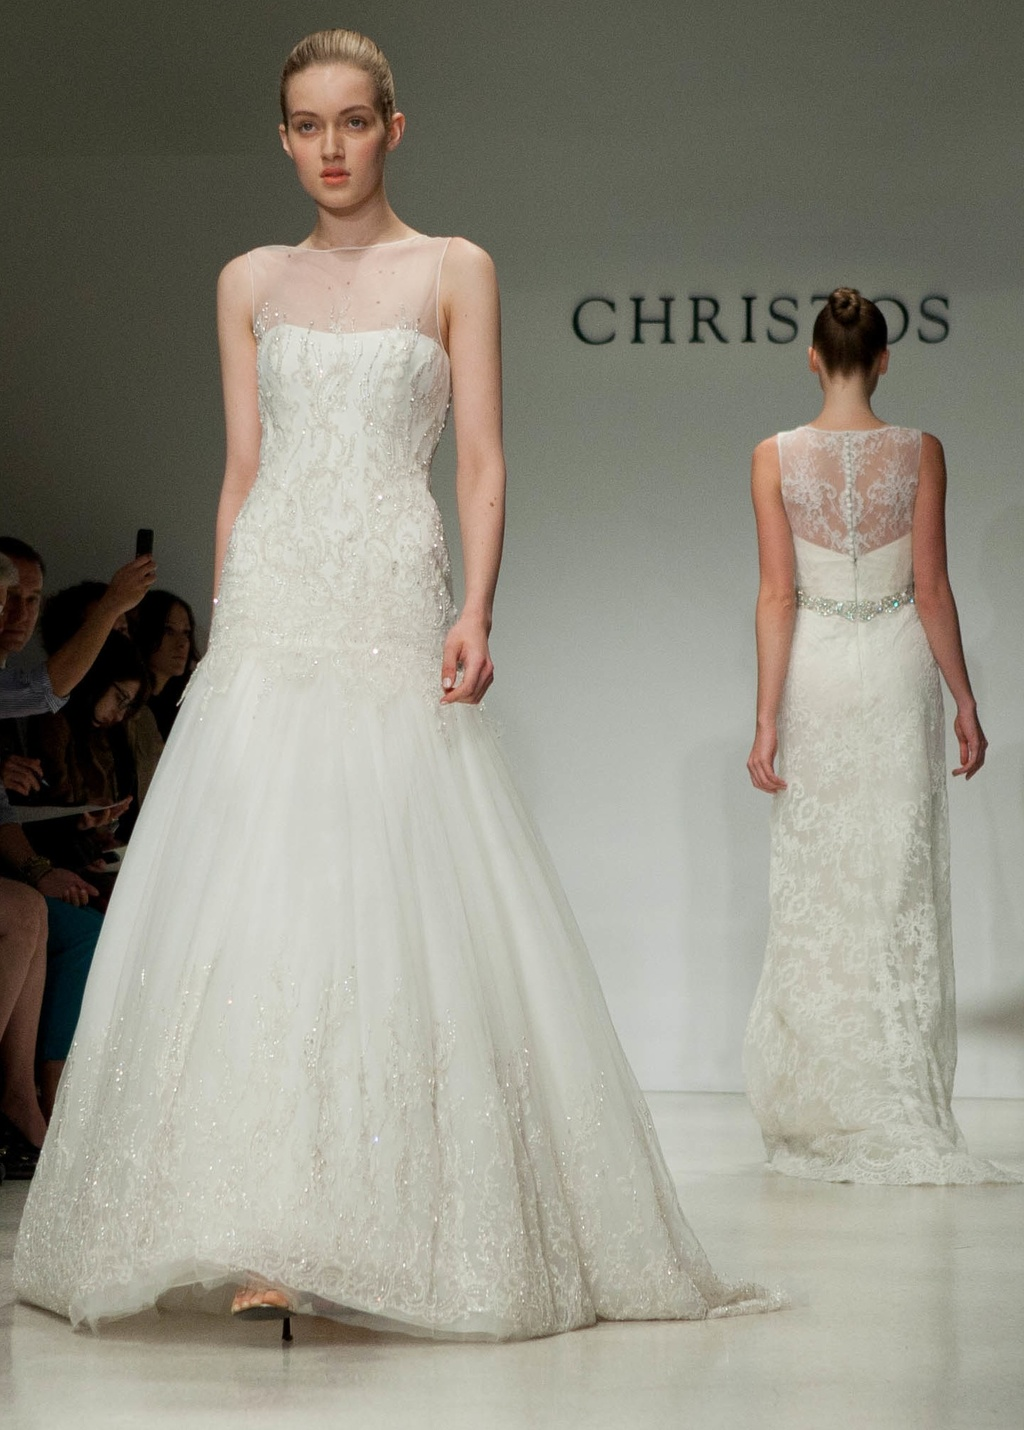 2012-wedding-dress-trends-sheer-transparency-bridal-gowns-illusion-neckline-christos-3.full